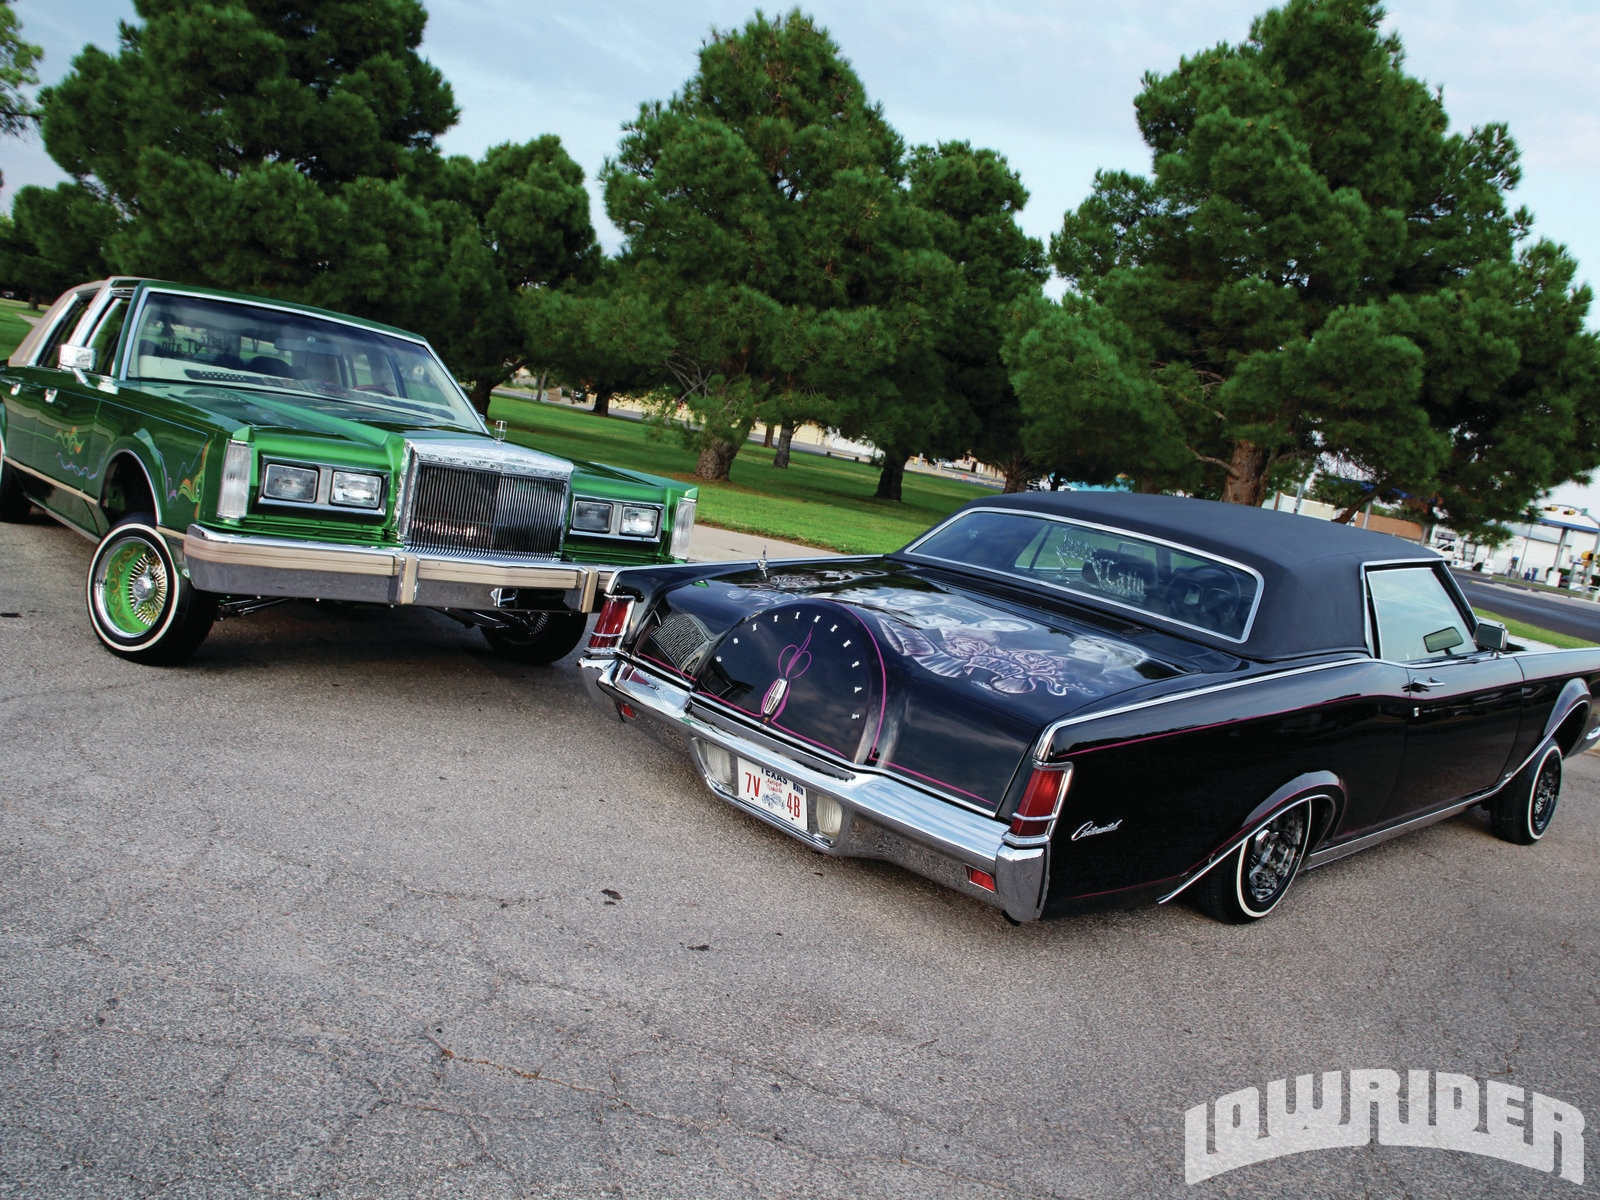 1969 lincoln mark iii \u0026 1981 lincoln town car lowrider magazine1969 lincoln mark iii \u0026 1981 lincoln town car \u2013 mutual sabor